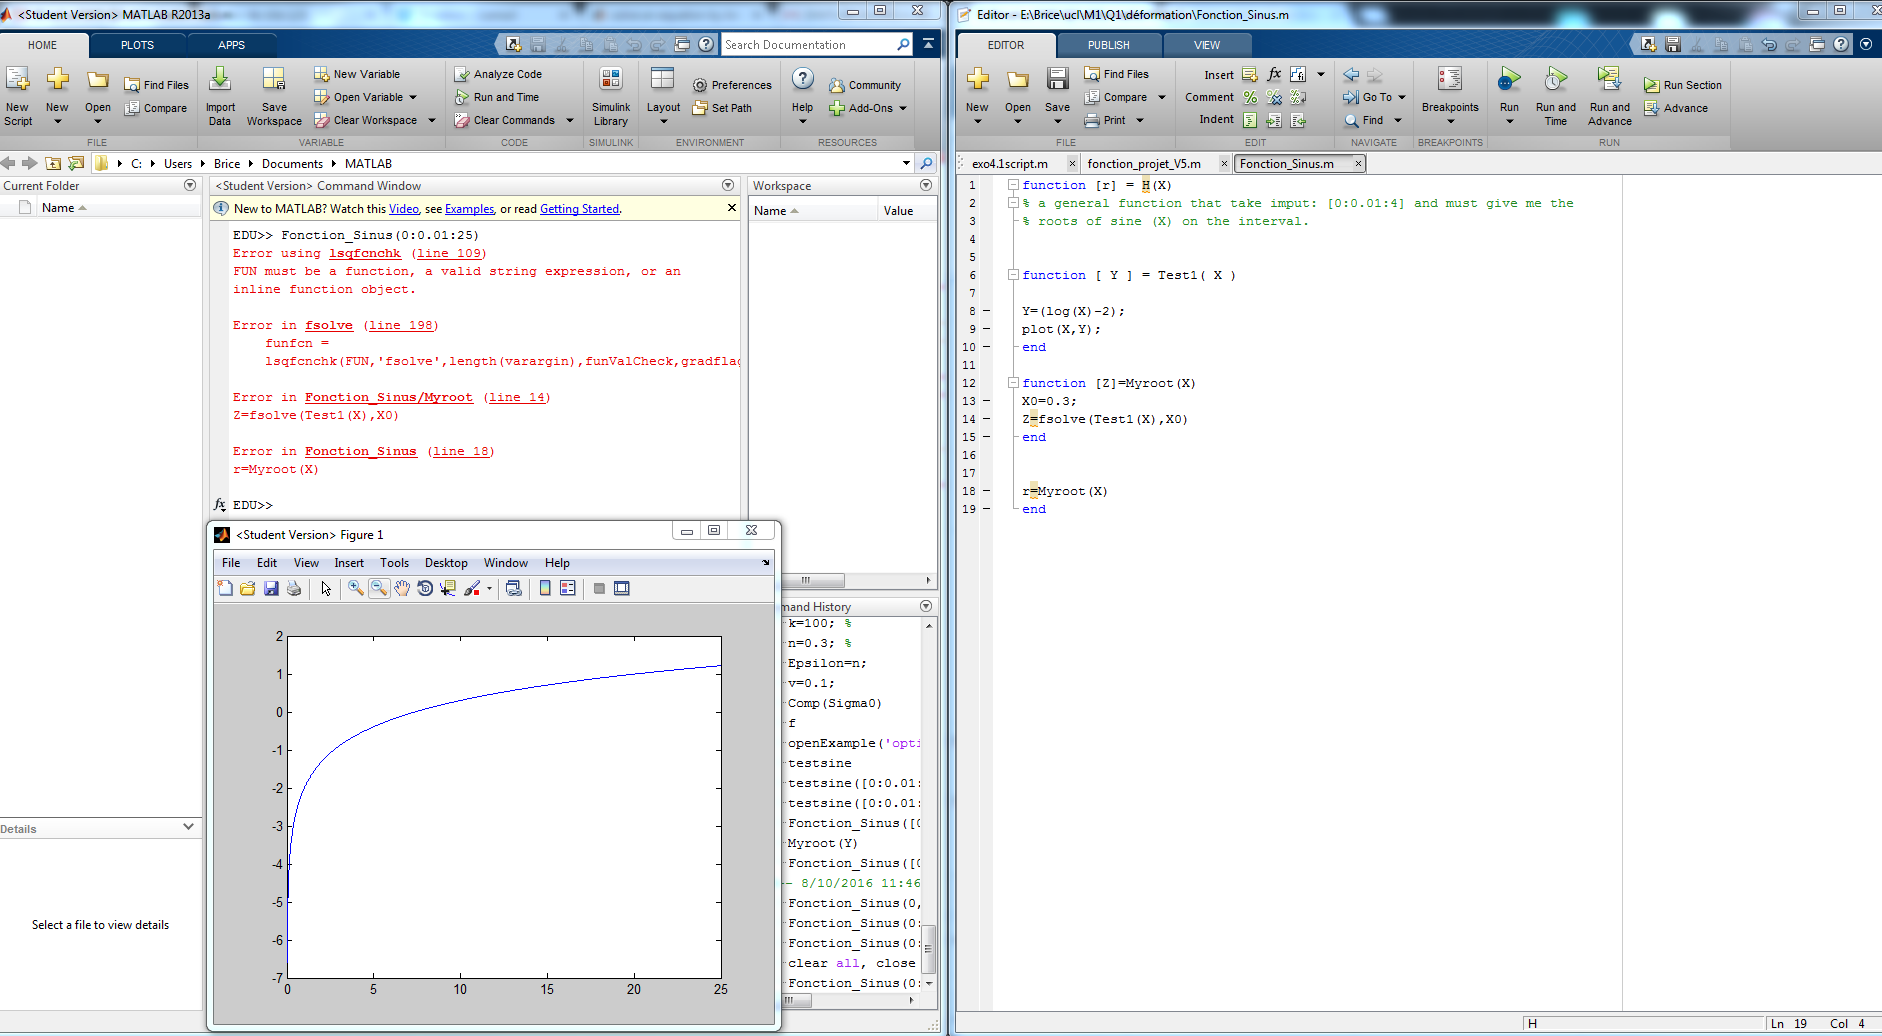 solve an equation by iterration - MATLAB Answers - MATLAB